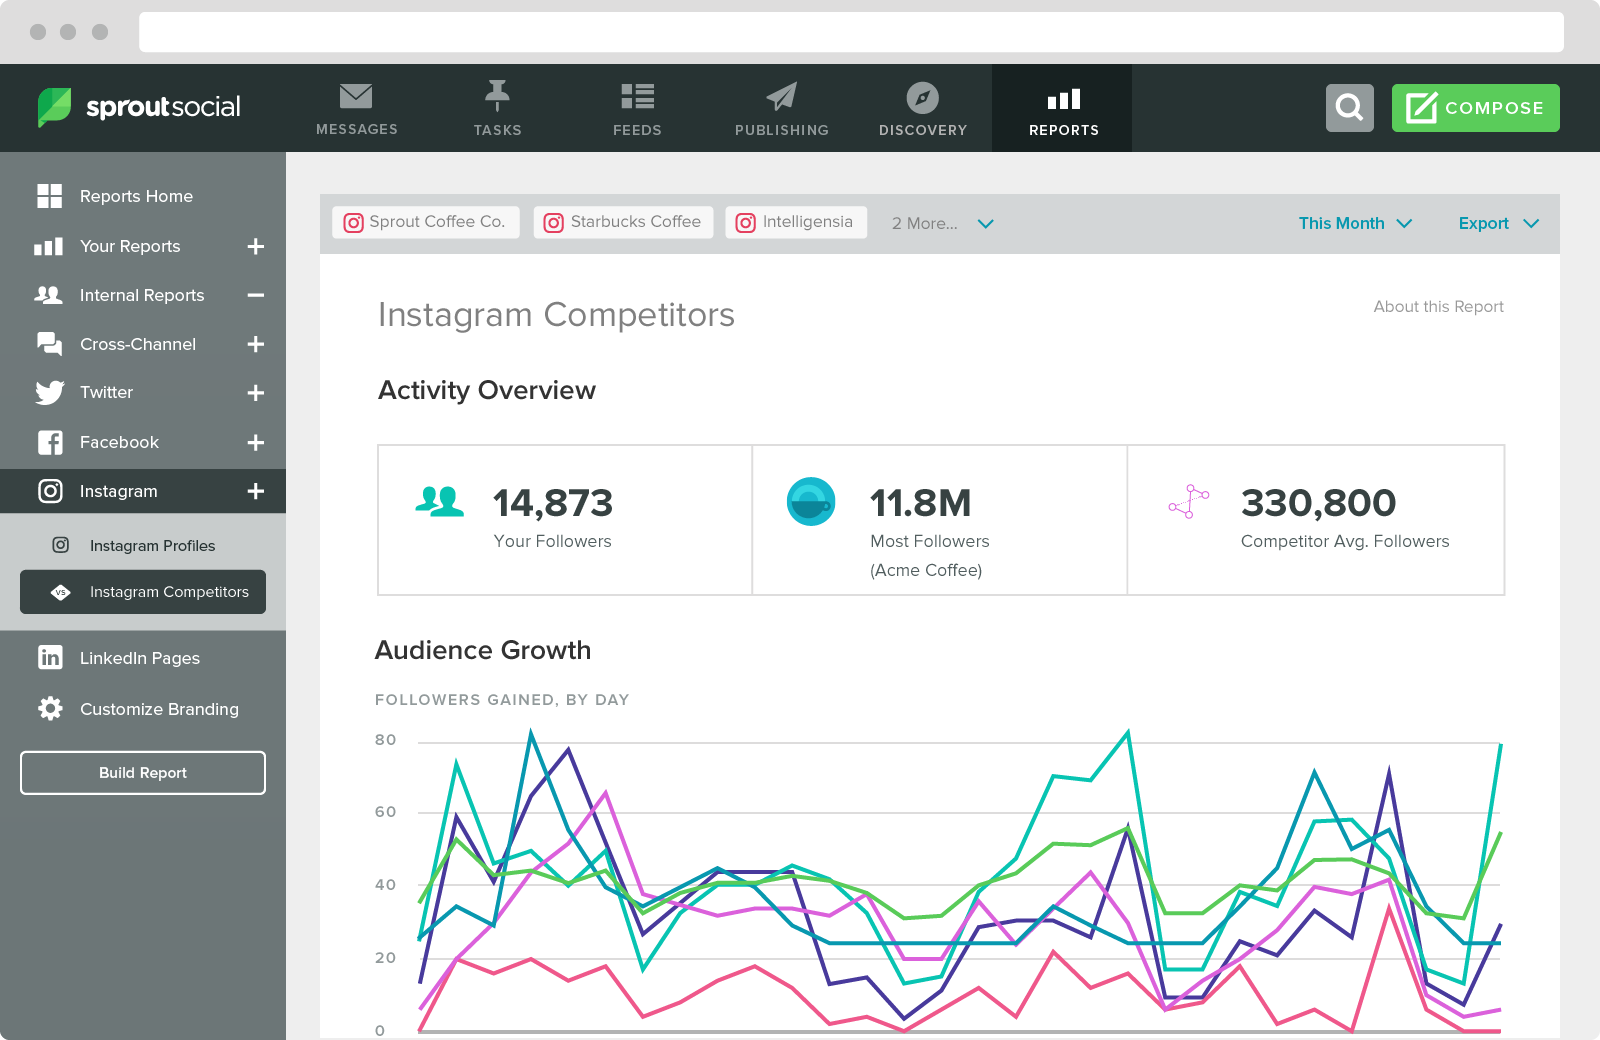 You can conduct Instagram competitor analysis with Sprout